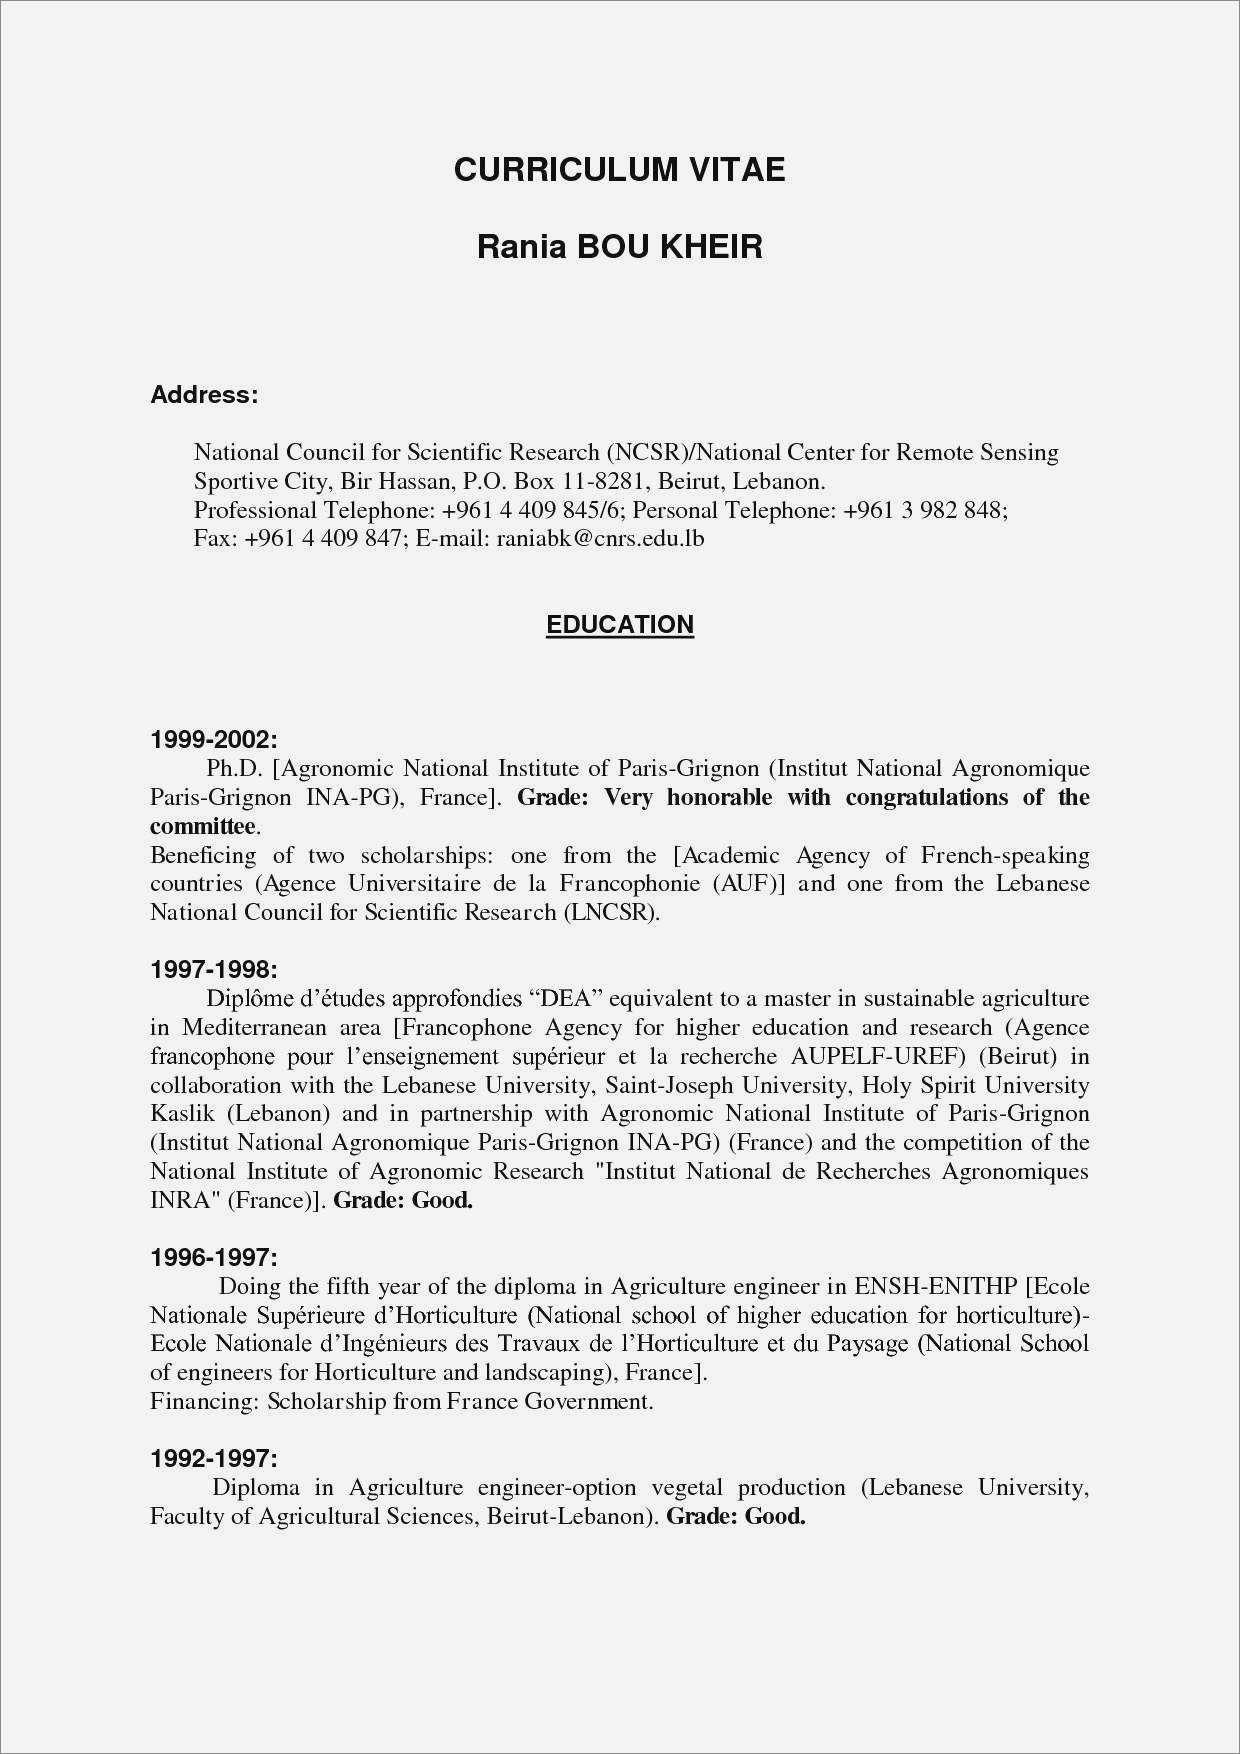 Resume Templates Word Free Download 2017 - Resume : Resume throughout Scientific Paper Template Word 2010